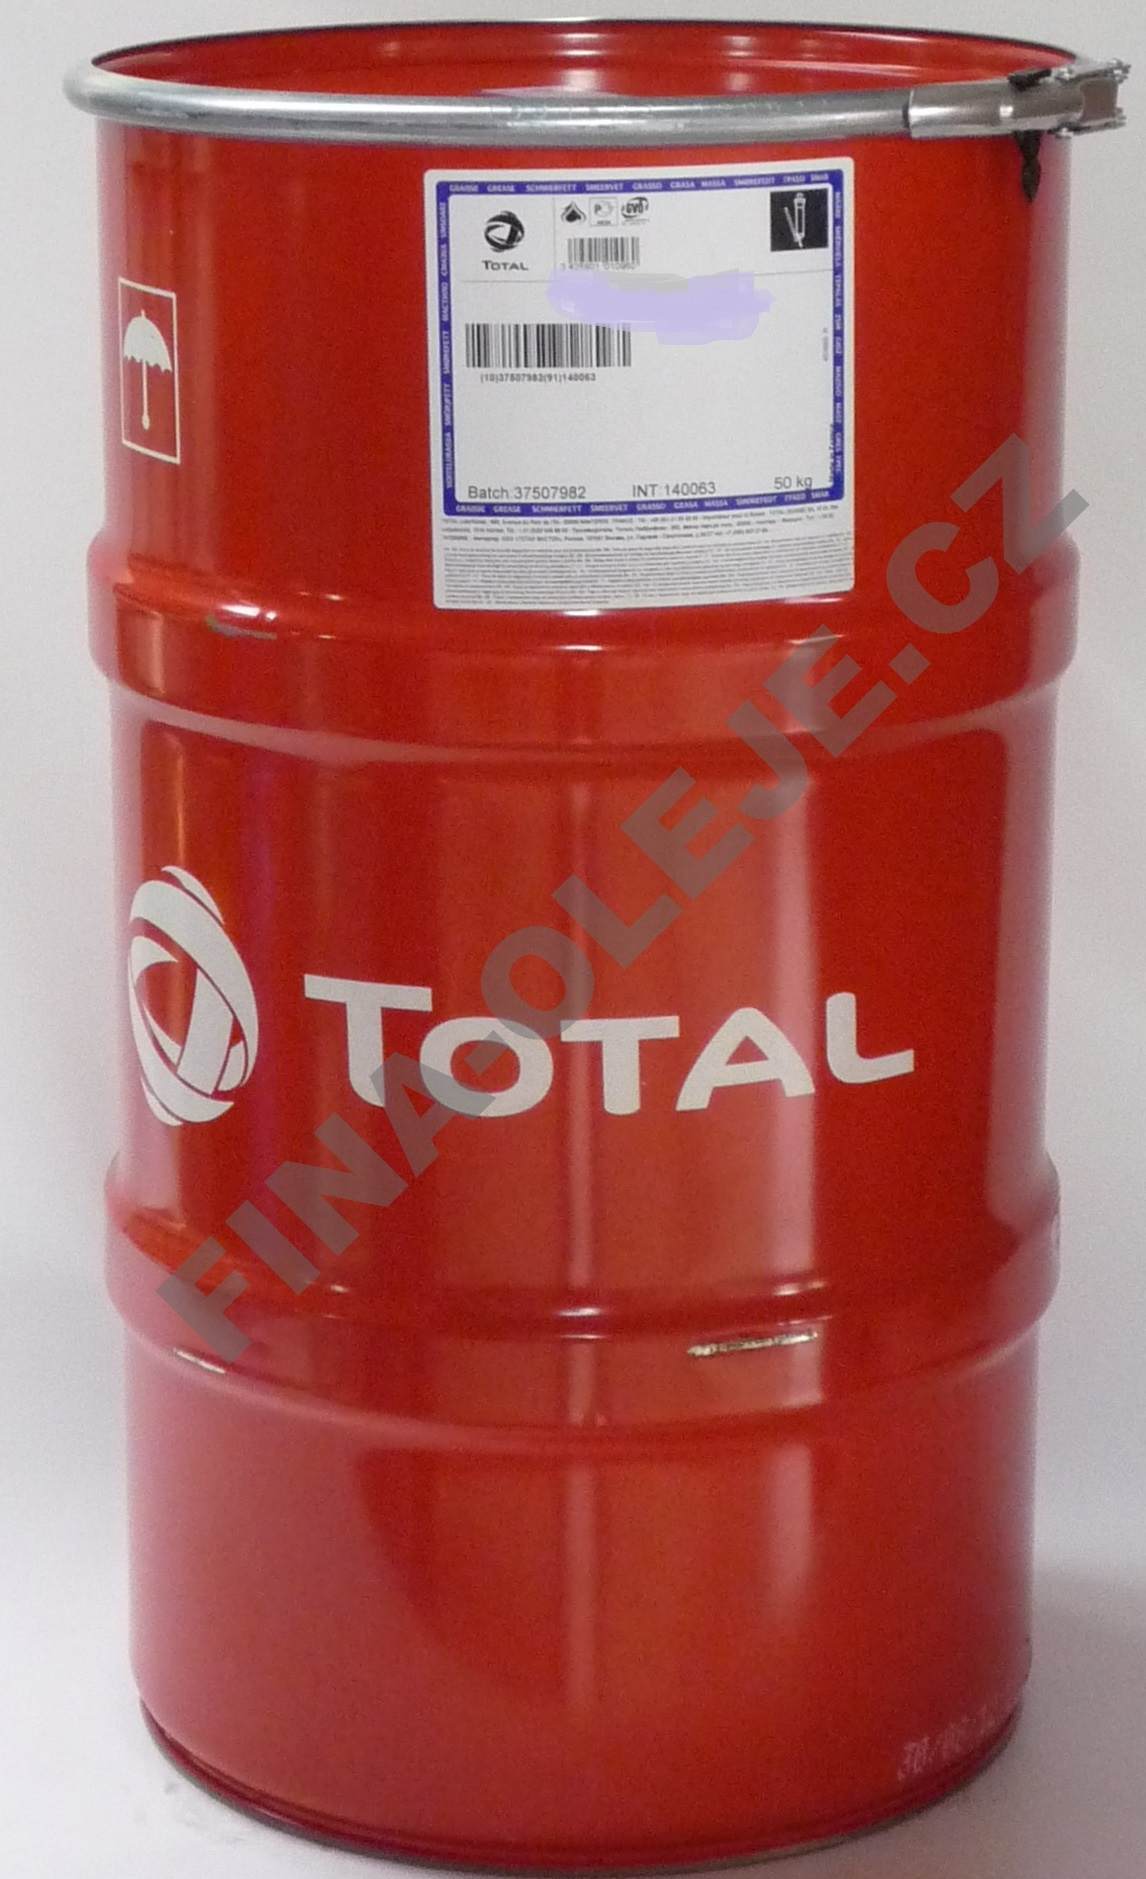 TOTAL CERAN AD PLUS - 50 kg